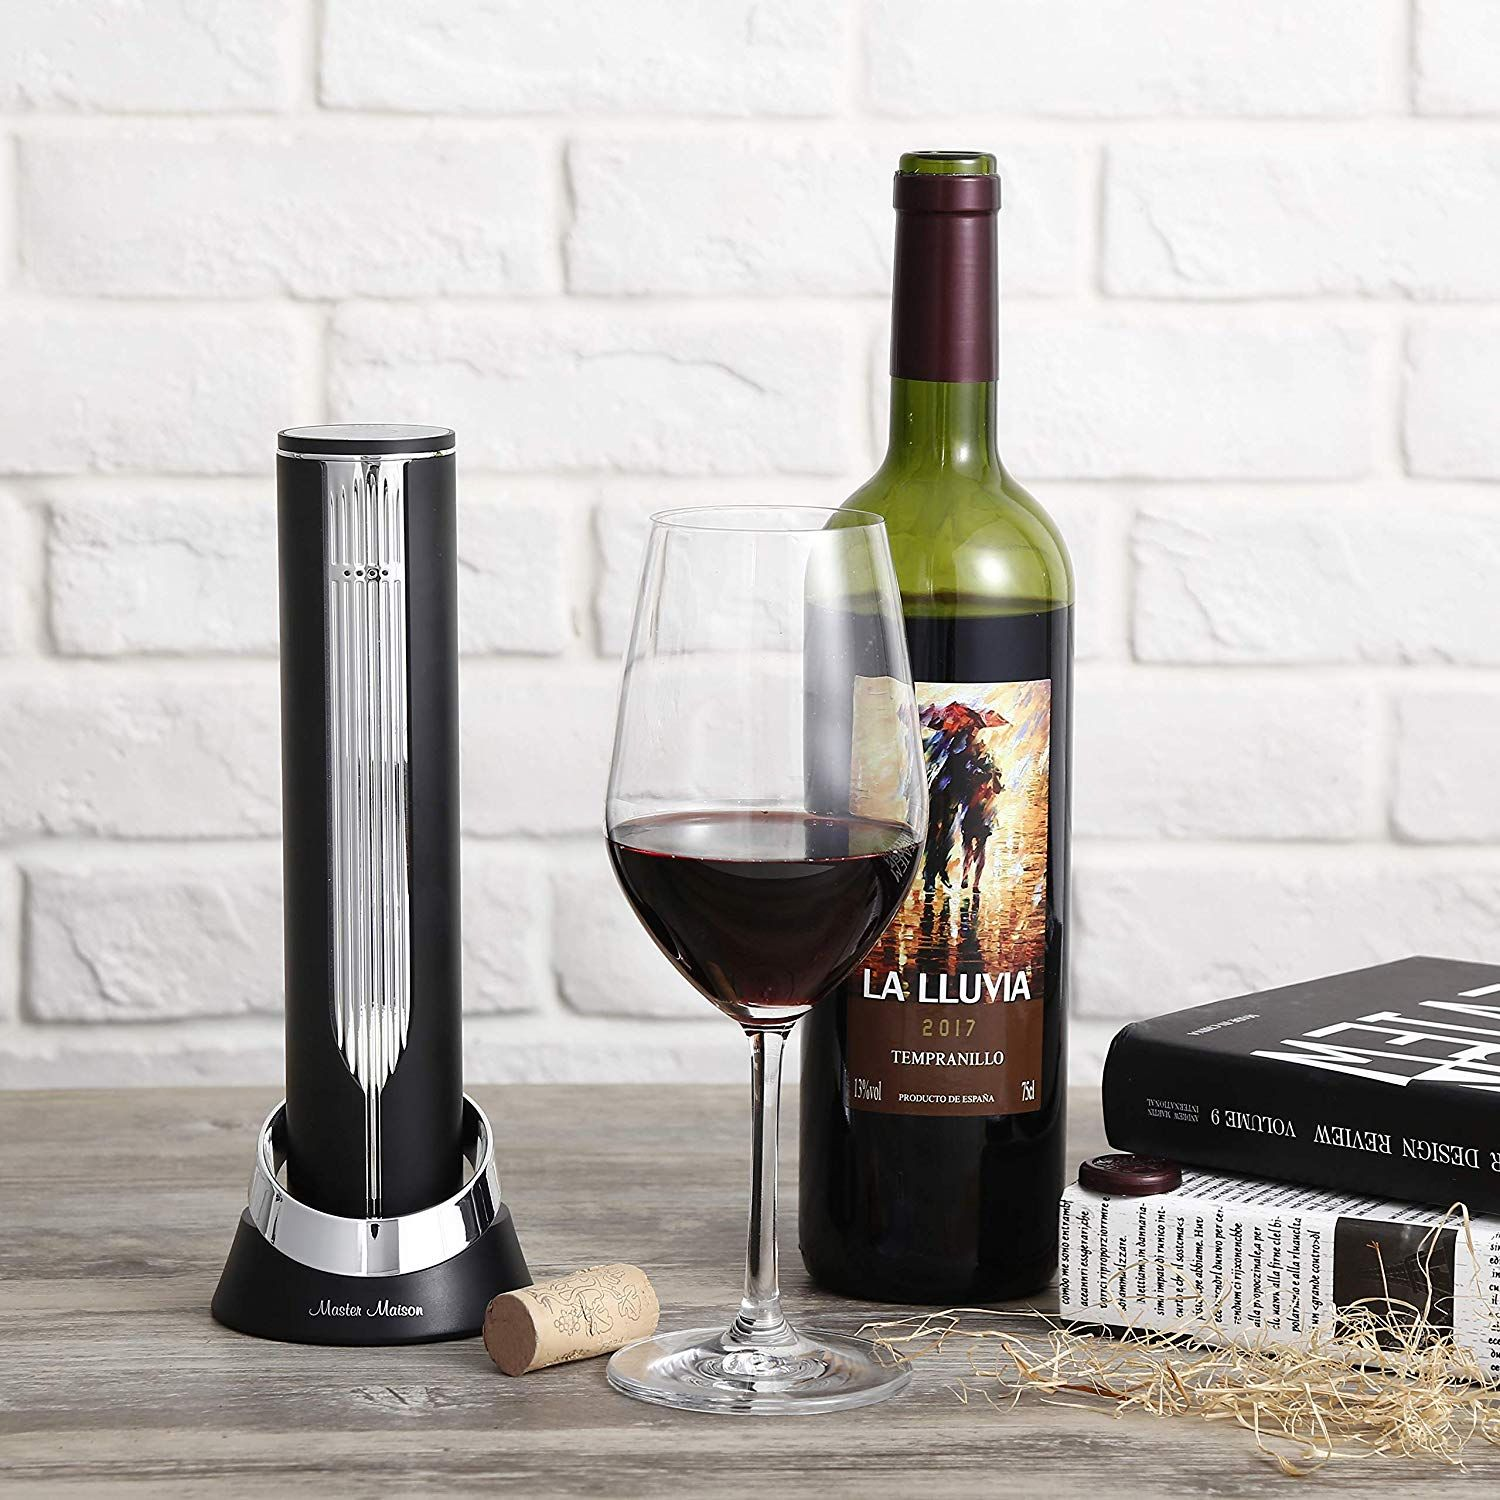 Tender Twist Electric Wine Bottle Opener Automatic Corkscrew Set Complete Kit With Built In Re Wine Bottle Opener Electric Wine Bottle Opener Bottle Opener